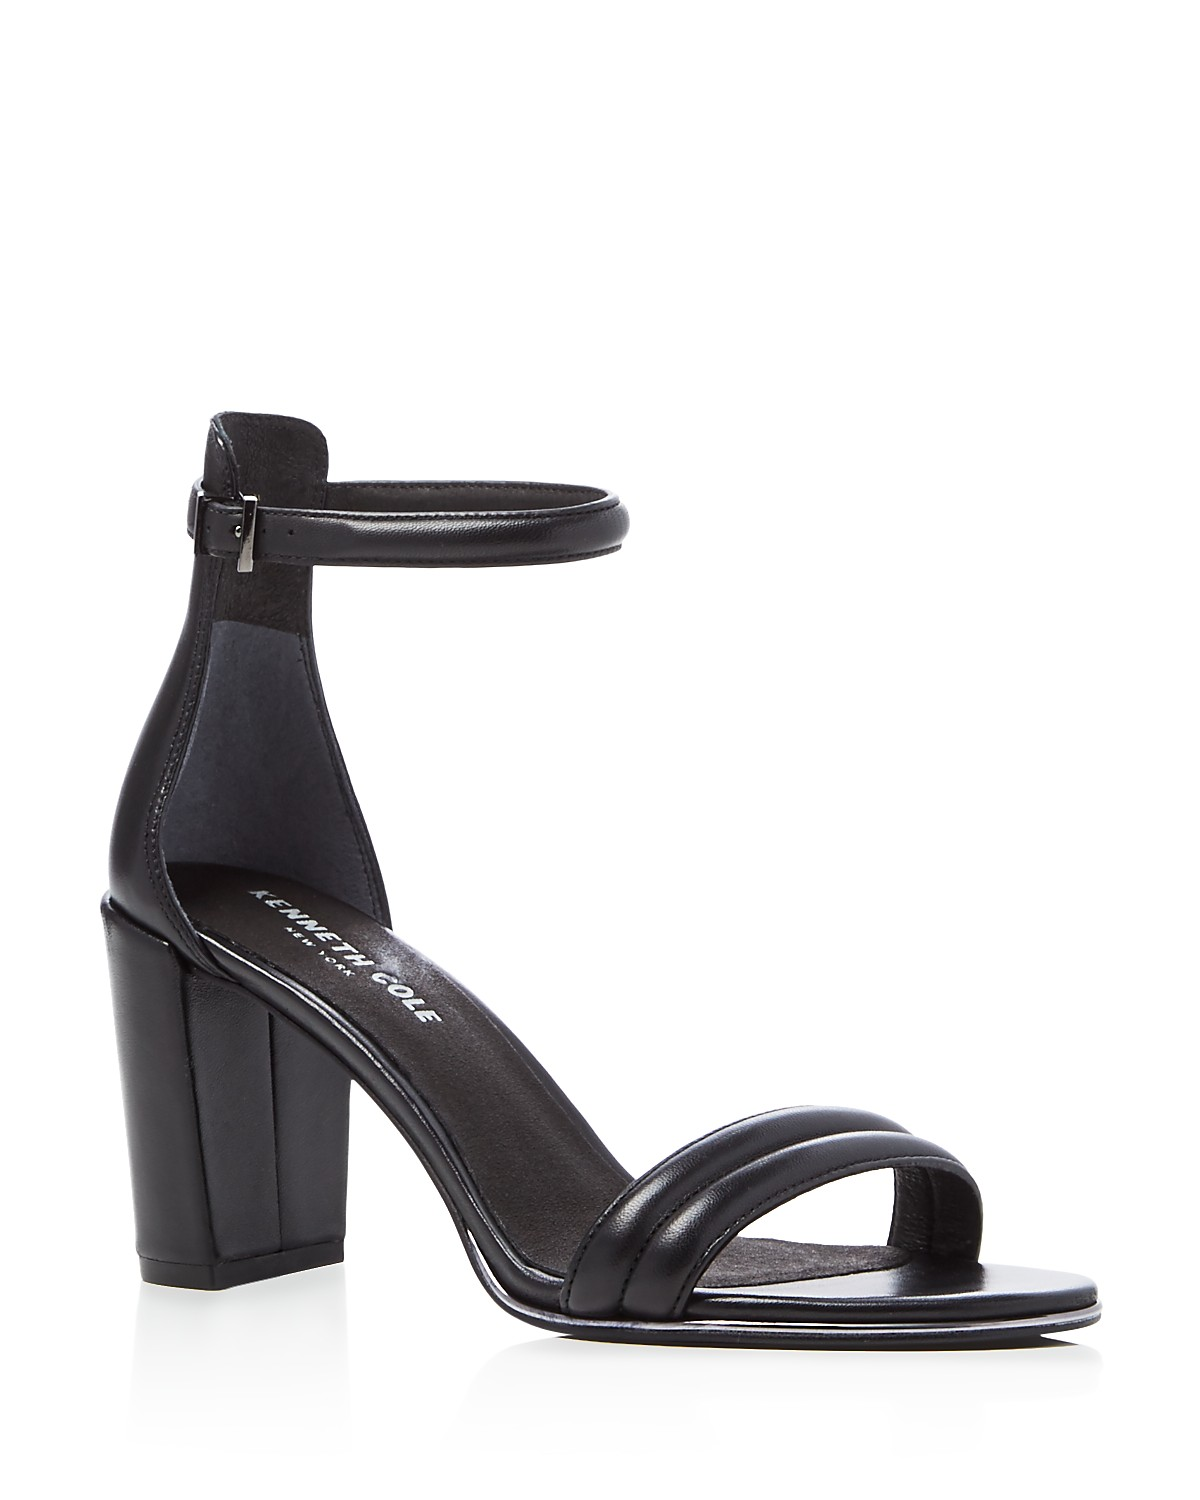 Kenneth Cole Lex Leather Ankle Strap High-Heel Sandals ZtOTTKmnm